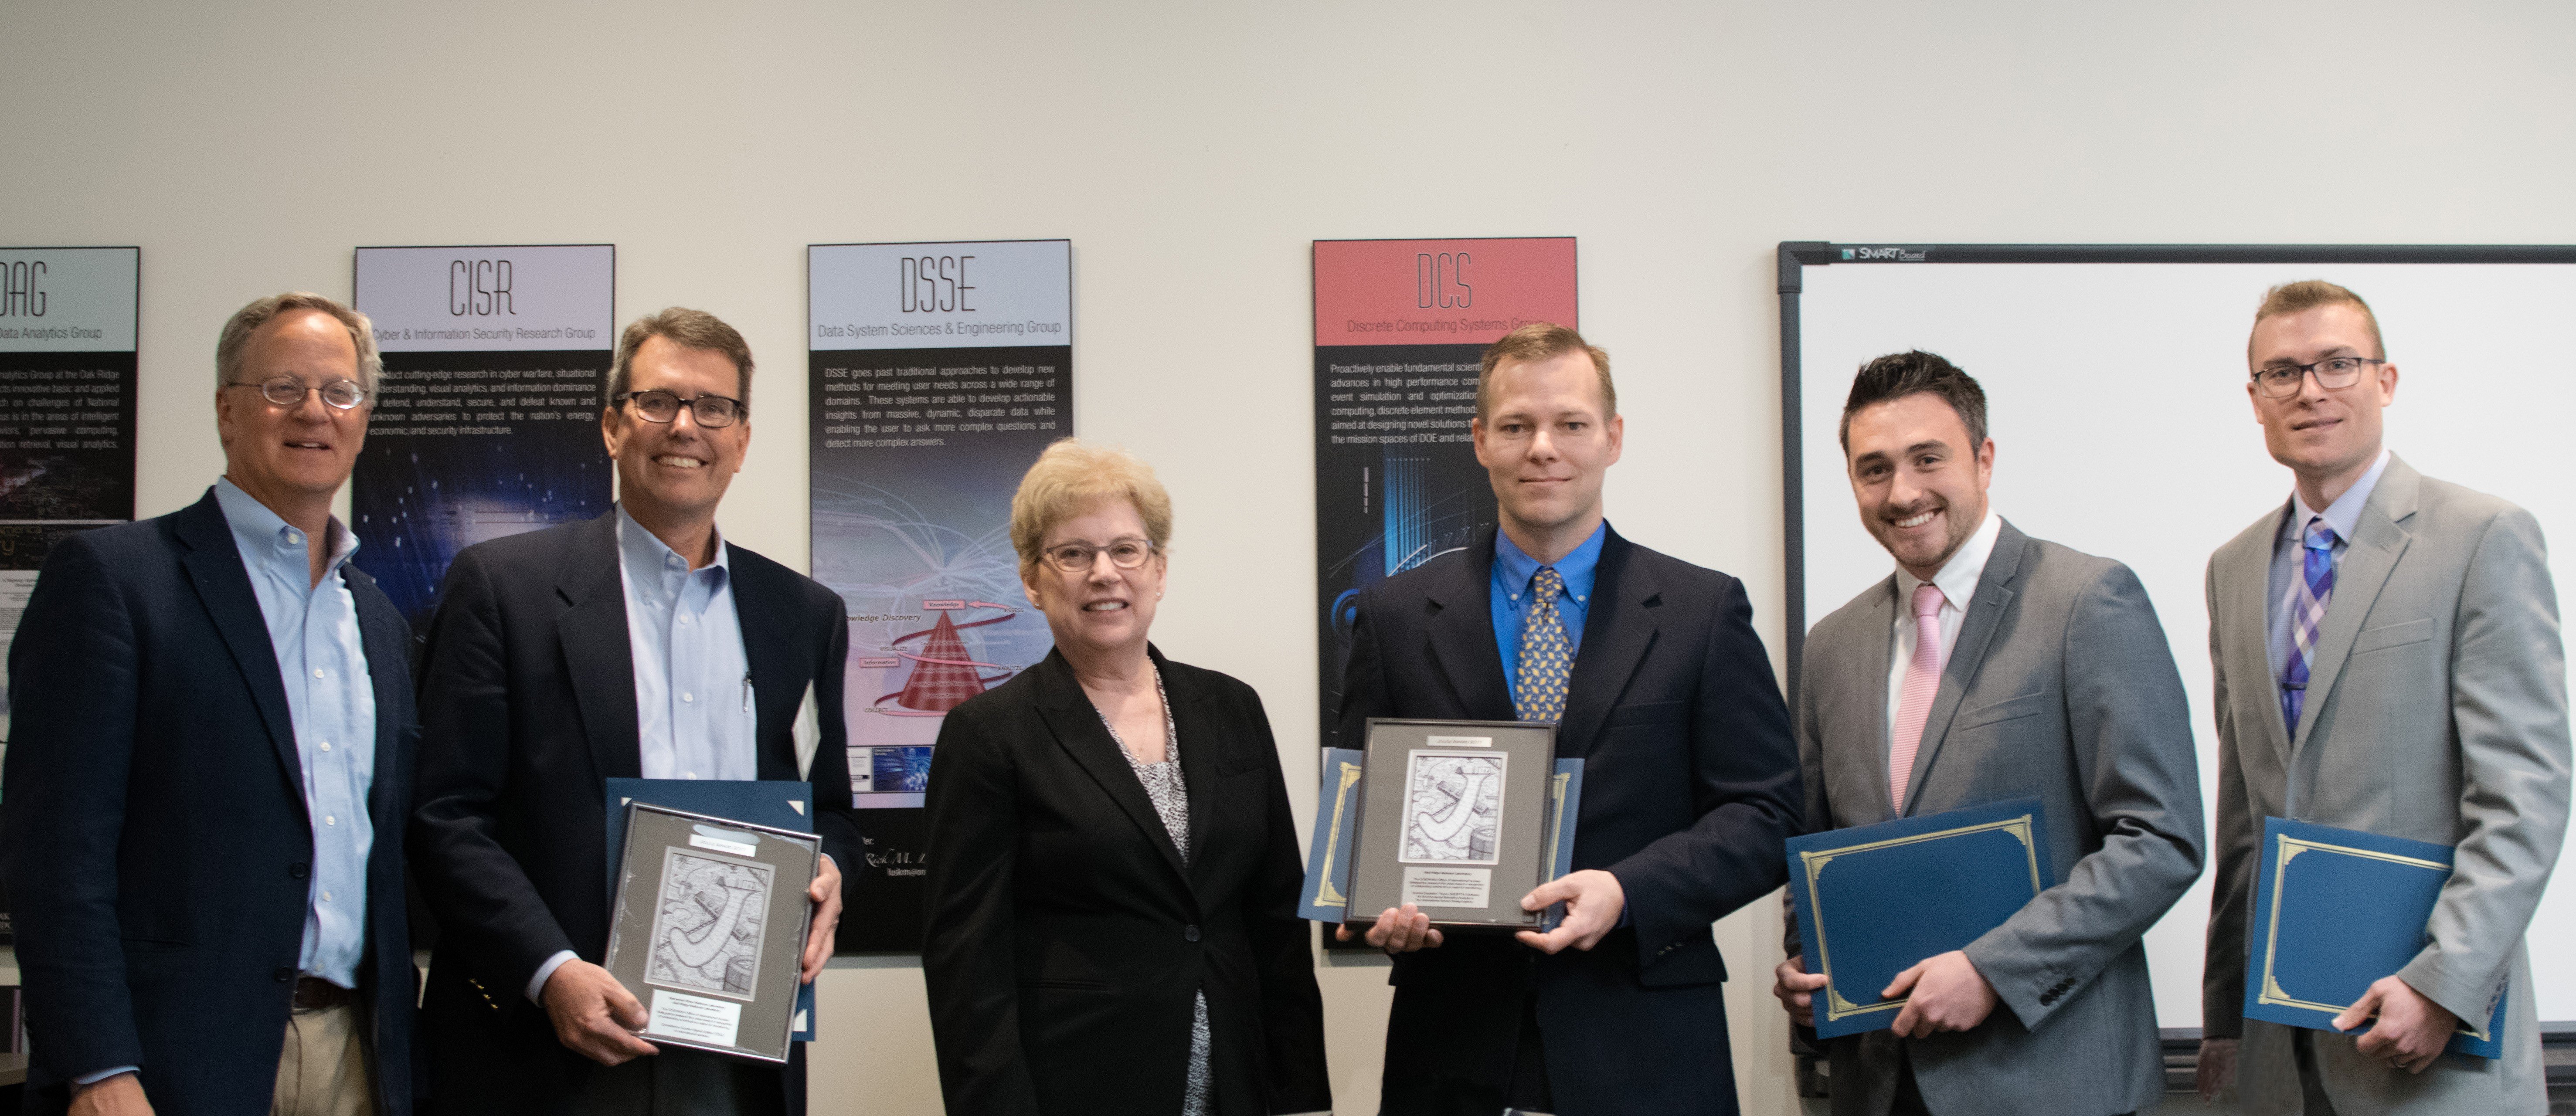 Joule Award recipients and presenters. L to R: NSITD division director Cecil Parks, Jeffrey Chapman, Arden Dougan, Brandon Grogan, Murray Purves, Jordan Lefebvre (Not pictured: William Wieselquist)